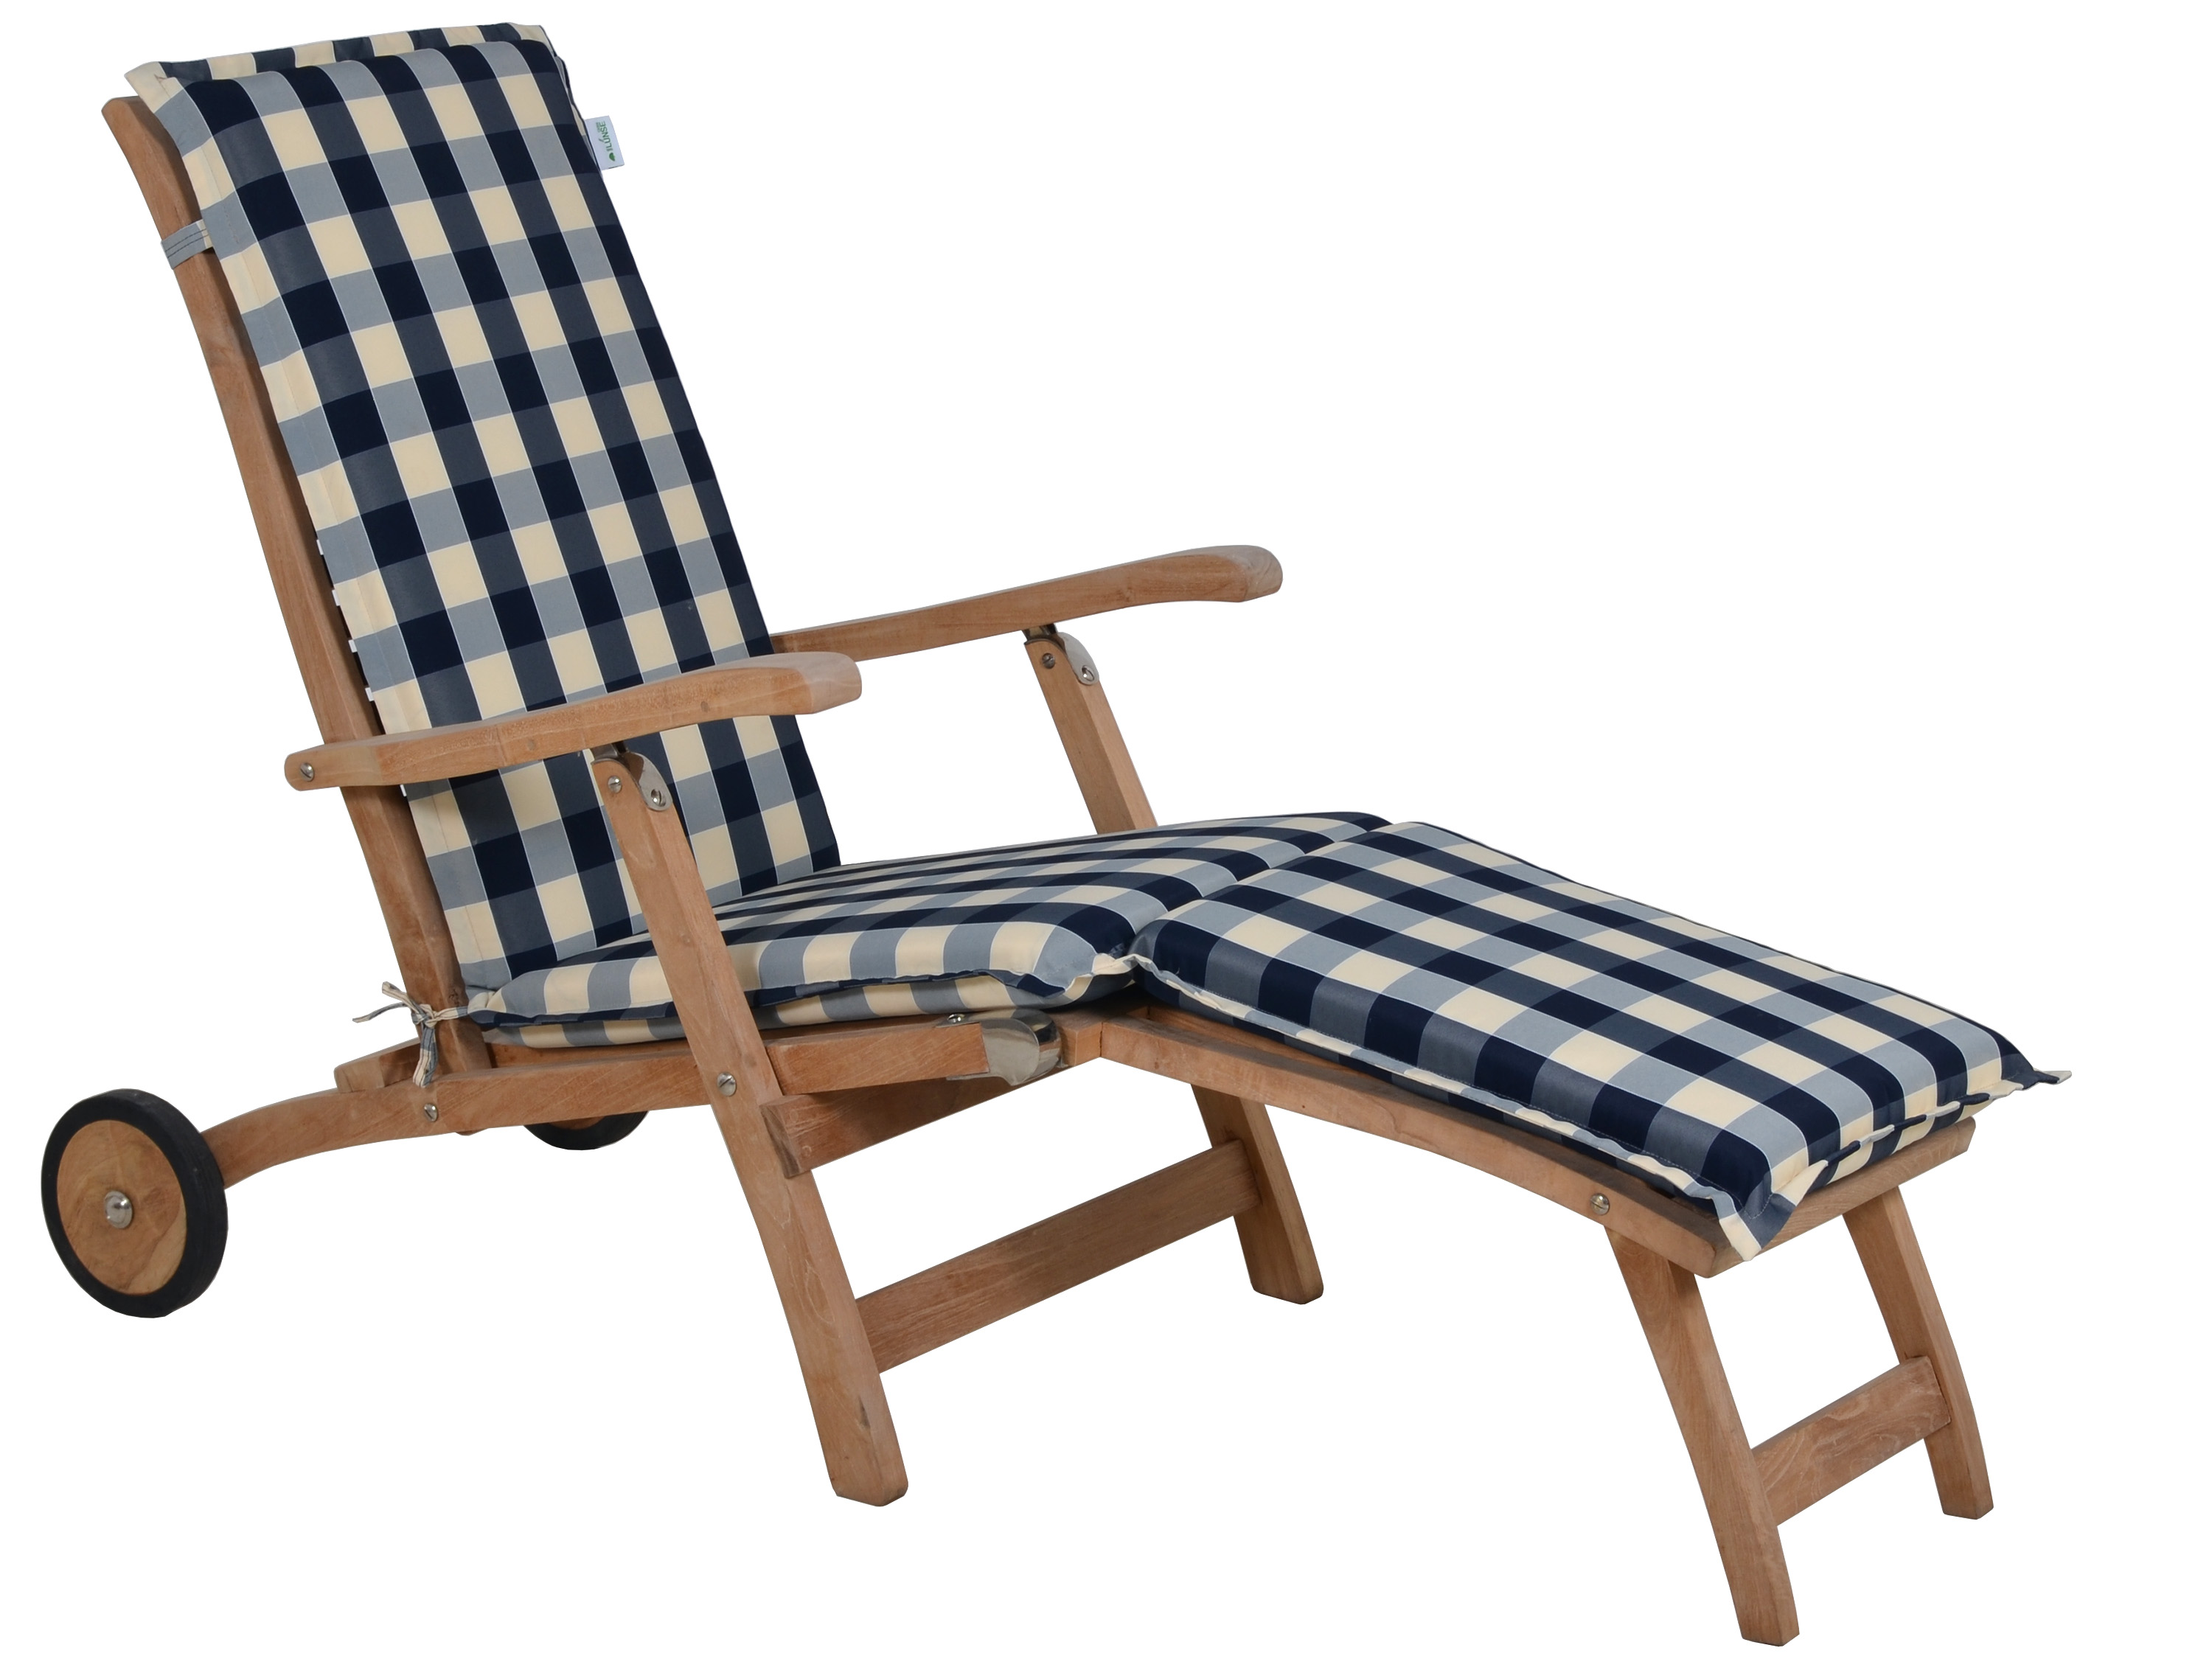 deckchair auflage santos blau beige kariert gartenm bel l nse. Black Bedroom Furniture Sets. Home Design Ideas